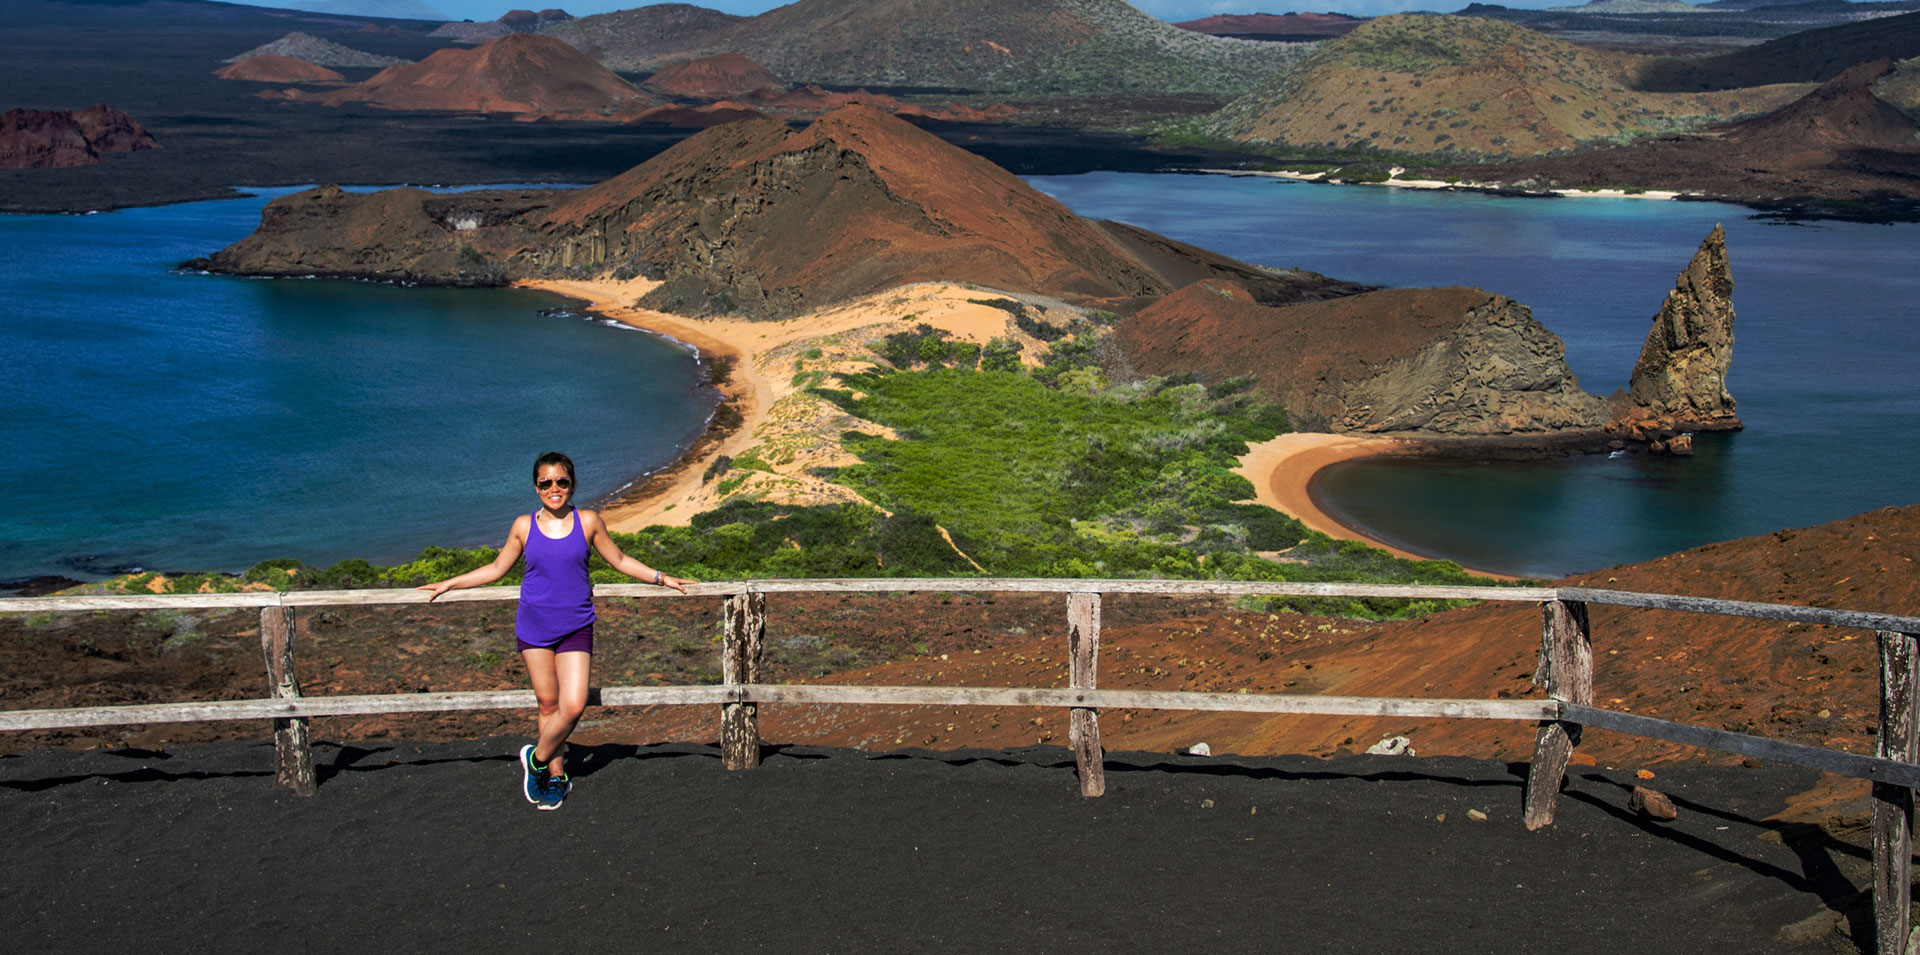 Bartolome, in the Galapagos Islands, is one of the top secluded destinations in the world